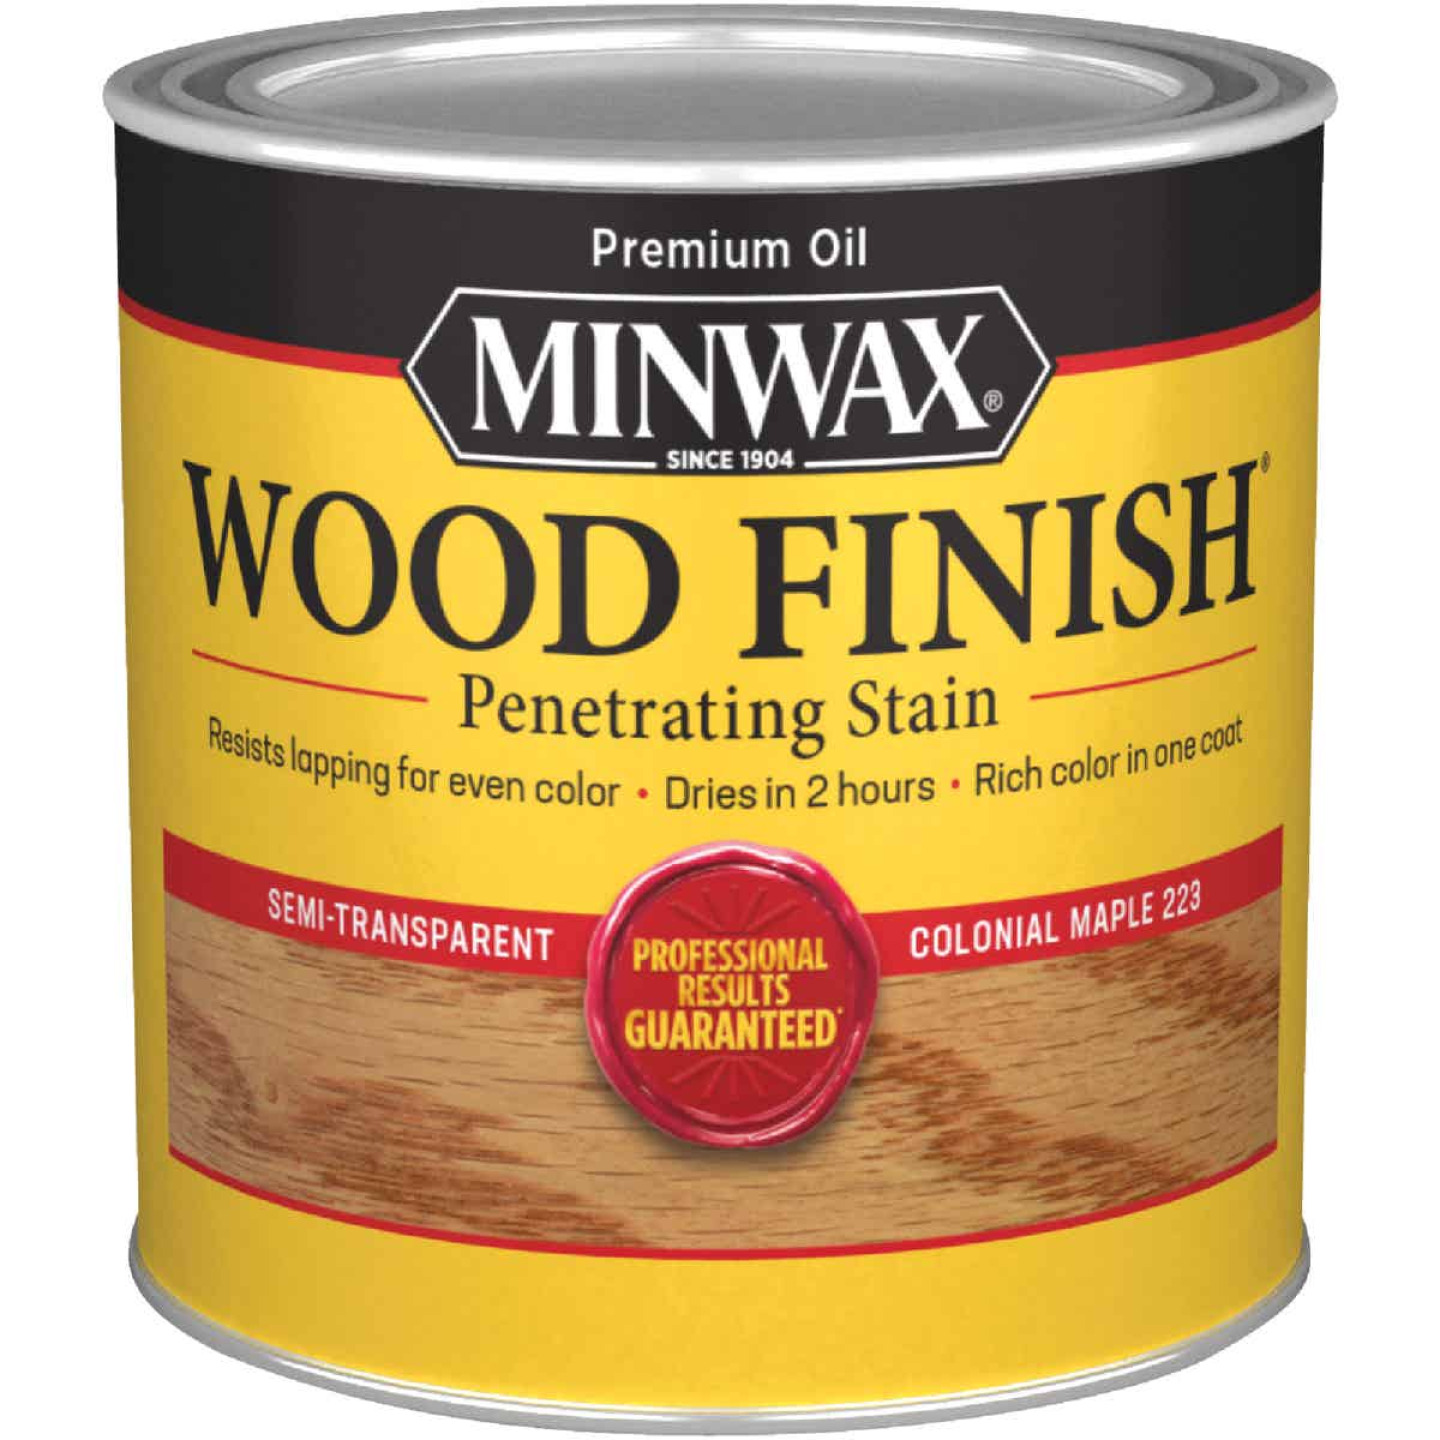 Minwax Wood Finish Penetrating Stain, Colonial Maple, 1/2 Pt. Image 1